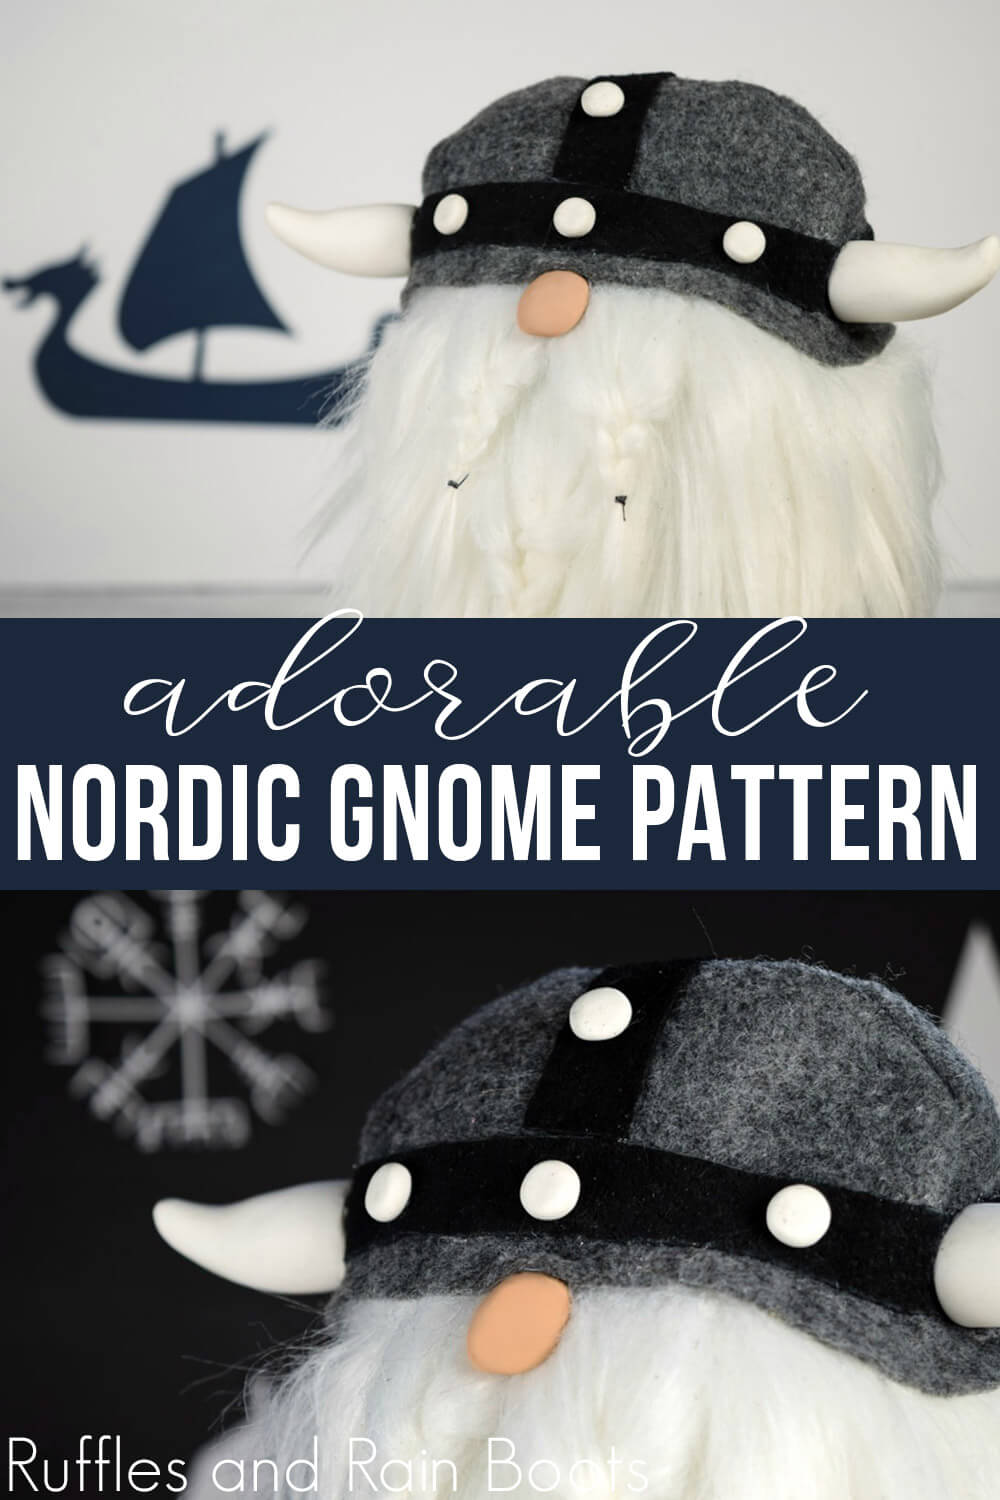 photo collage of Viking gnome with text which reads adorable nordic gnome pattern